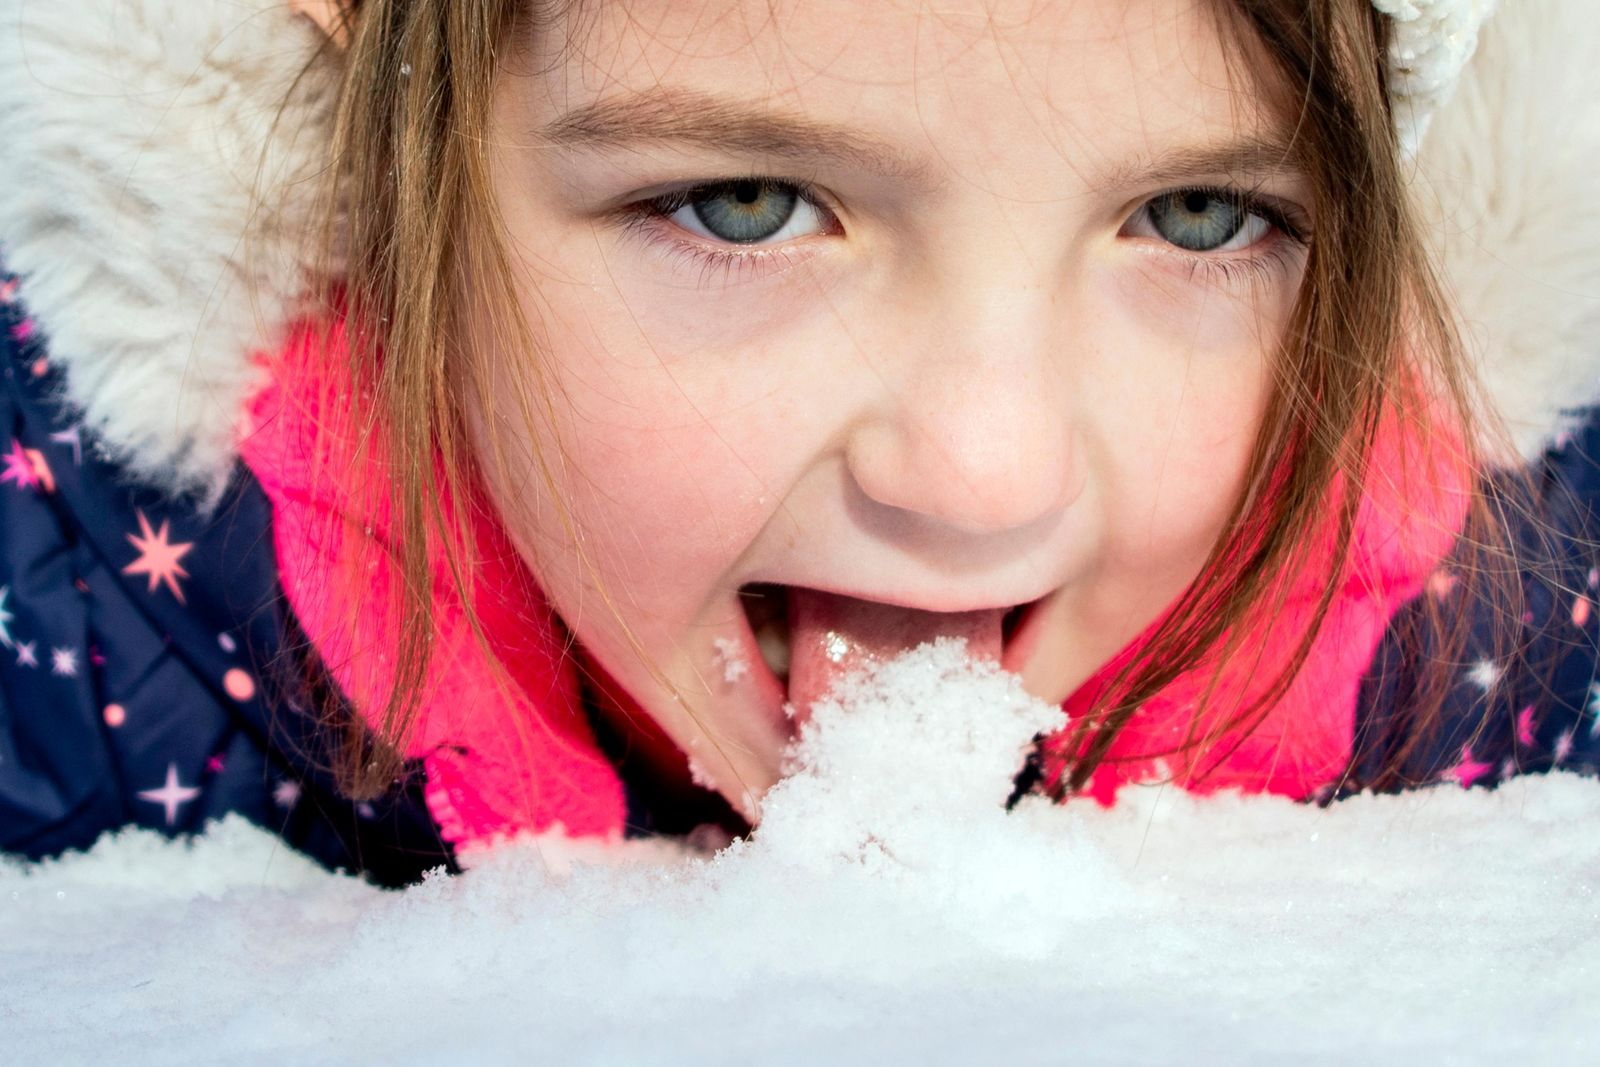 Emma Hart, 5 of Clio, stops to lick up fresh snow as she rolls around while sledding with her father Ryan Hart on the hill behind Southwestern Classical Academy on Tuesday, Nov. 12, 2019 in Flint, Mich. (Jake May/The Flint Journal via AP)